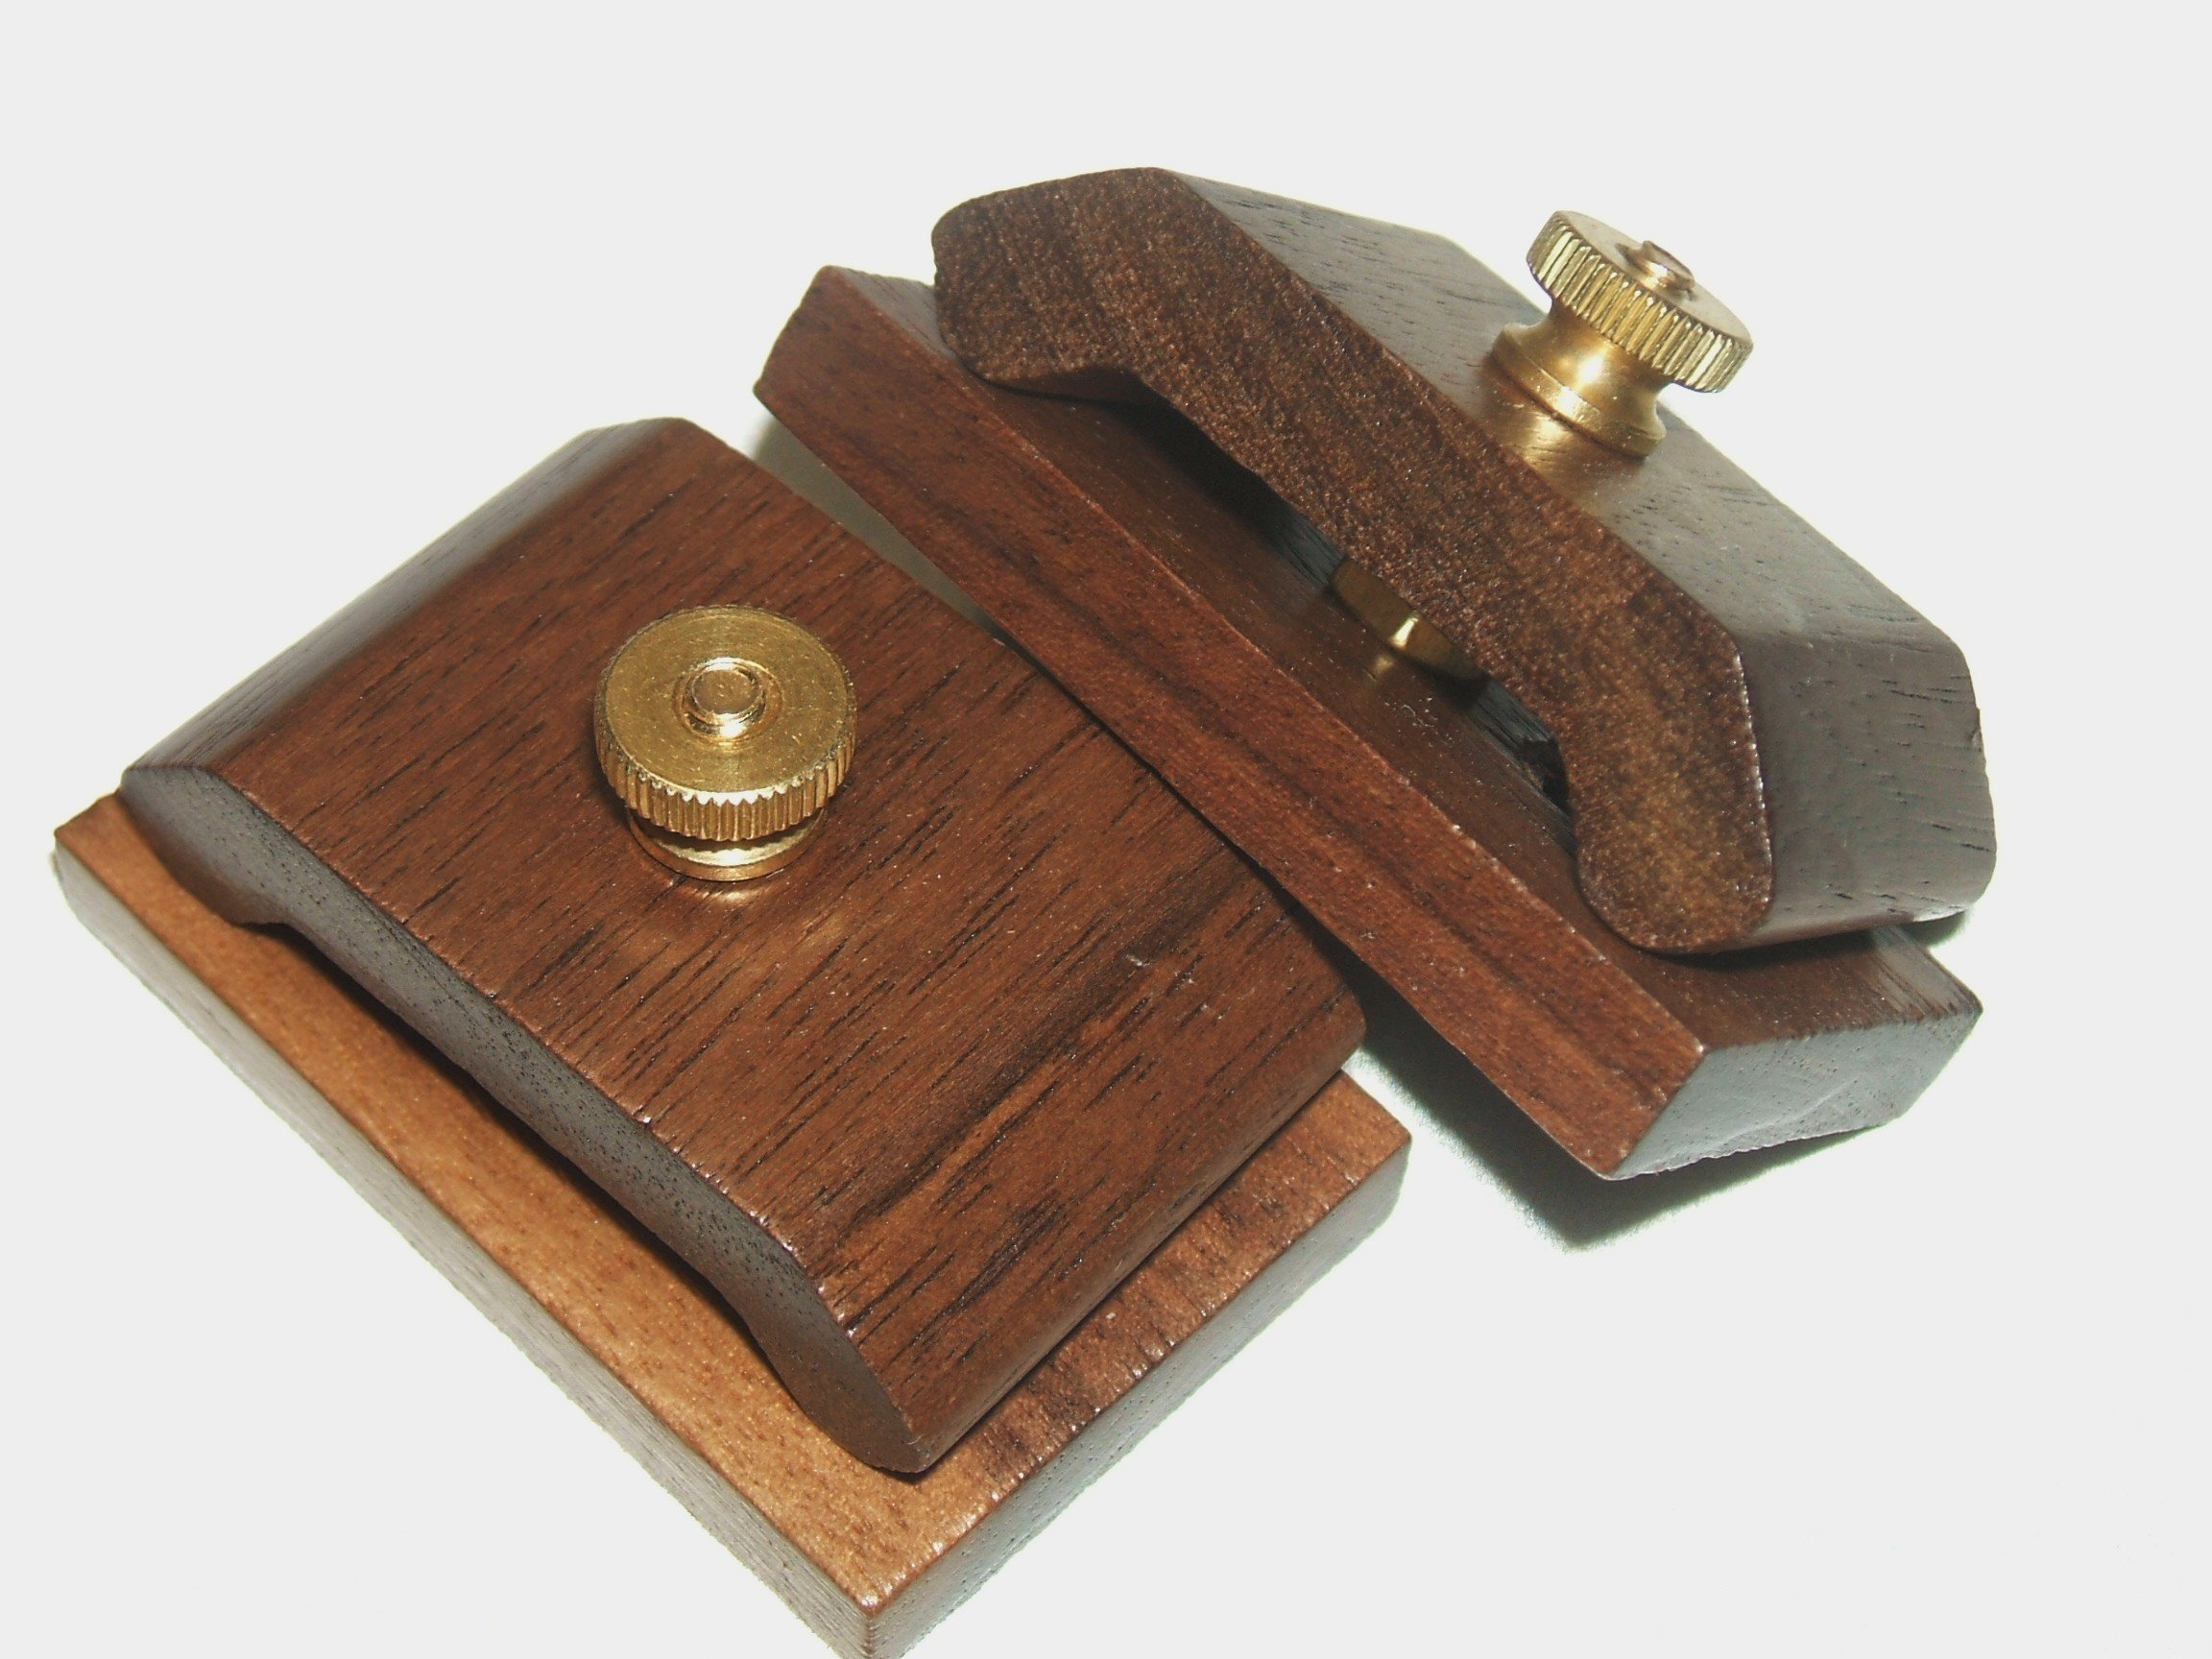 1 Pair Mini Walnut Hang-Ups Quilt Clamps Clips - Small by Walnut Hang-Ups (Image #2)